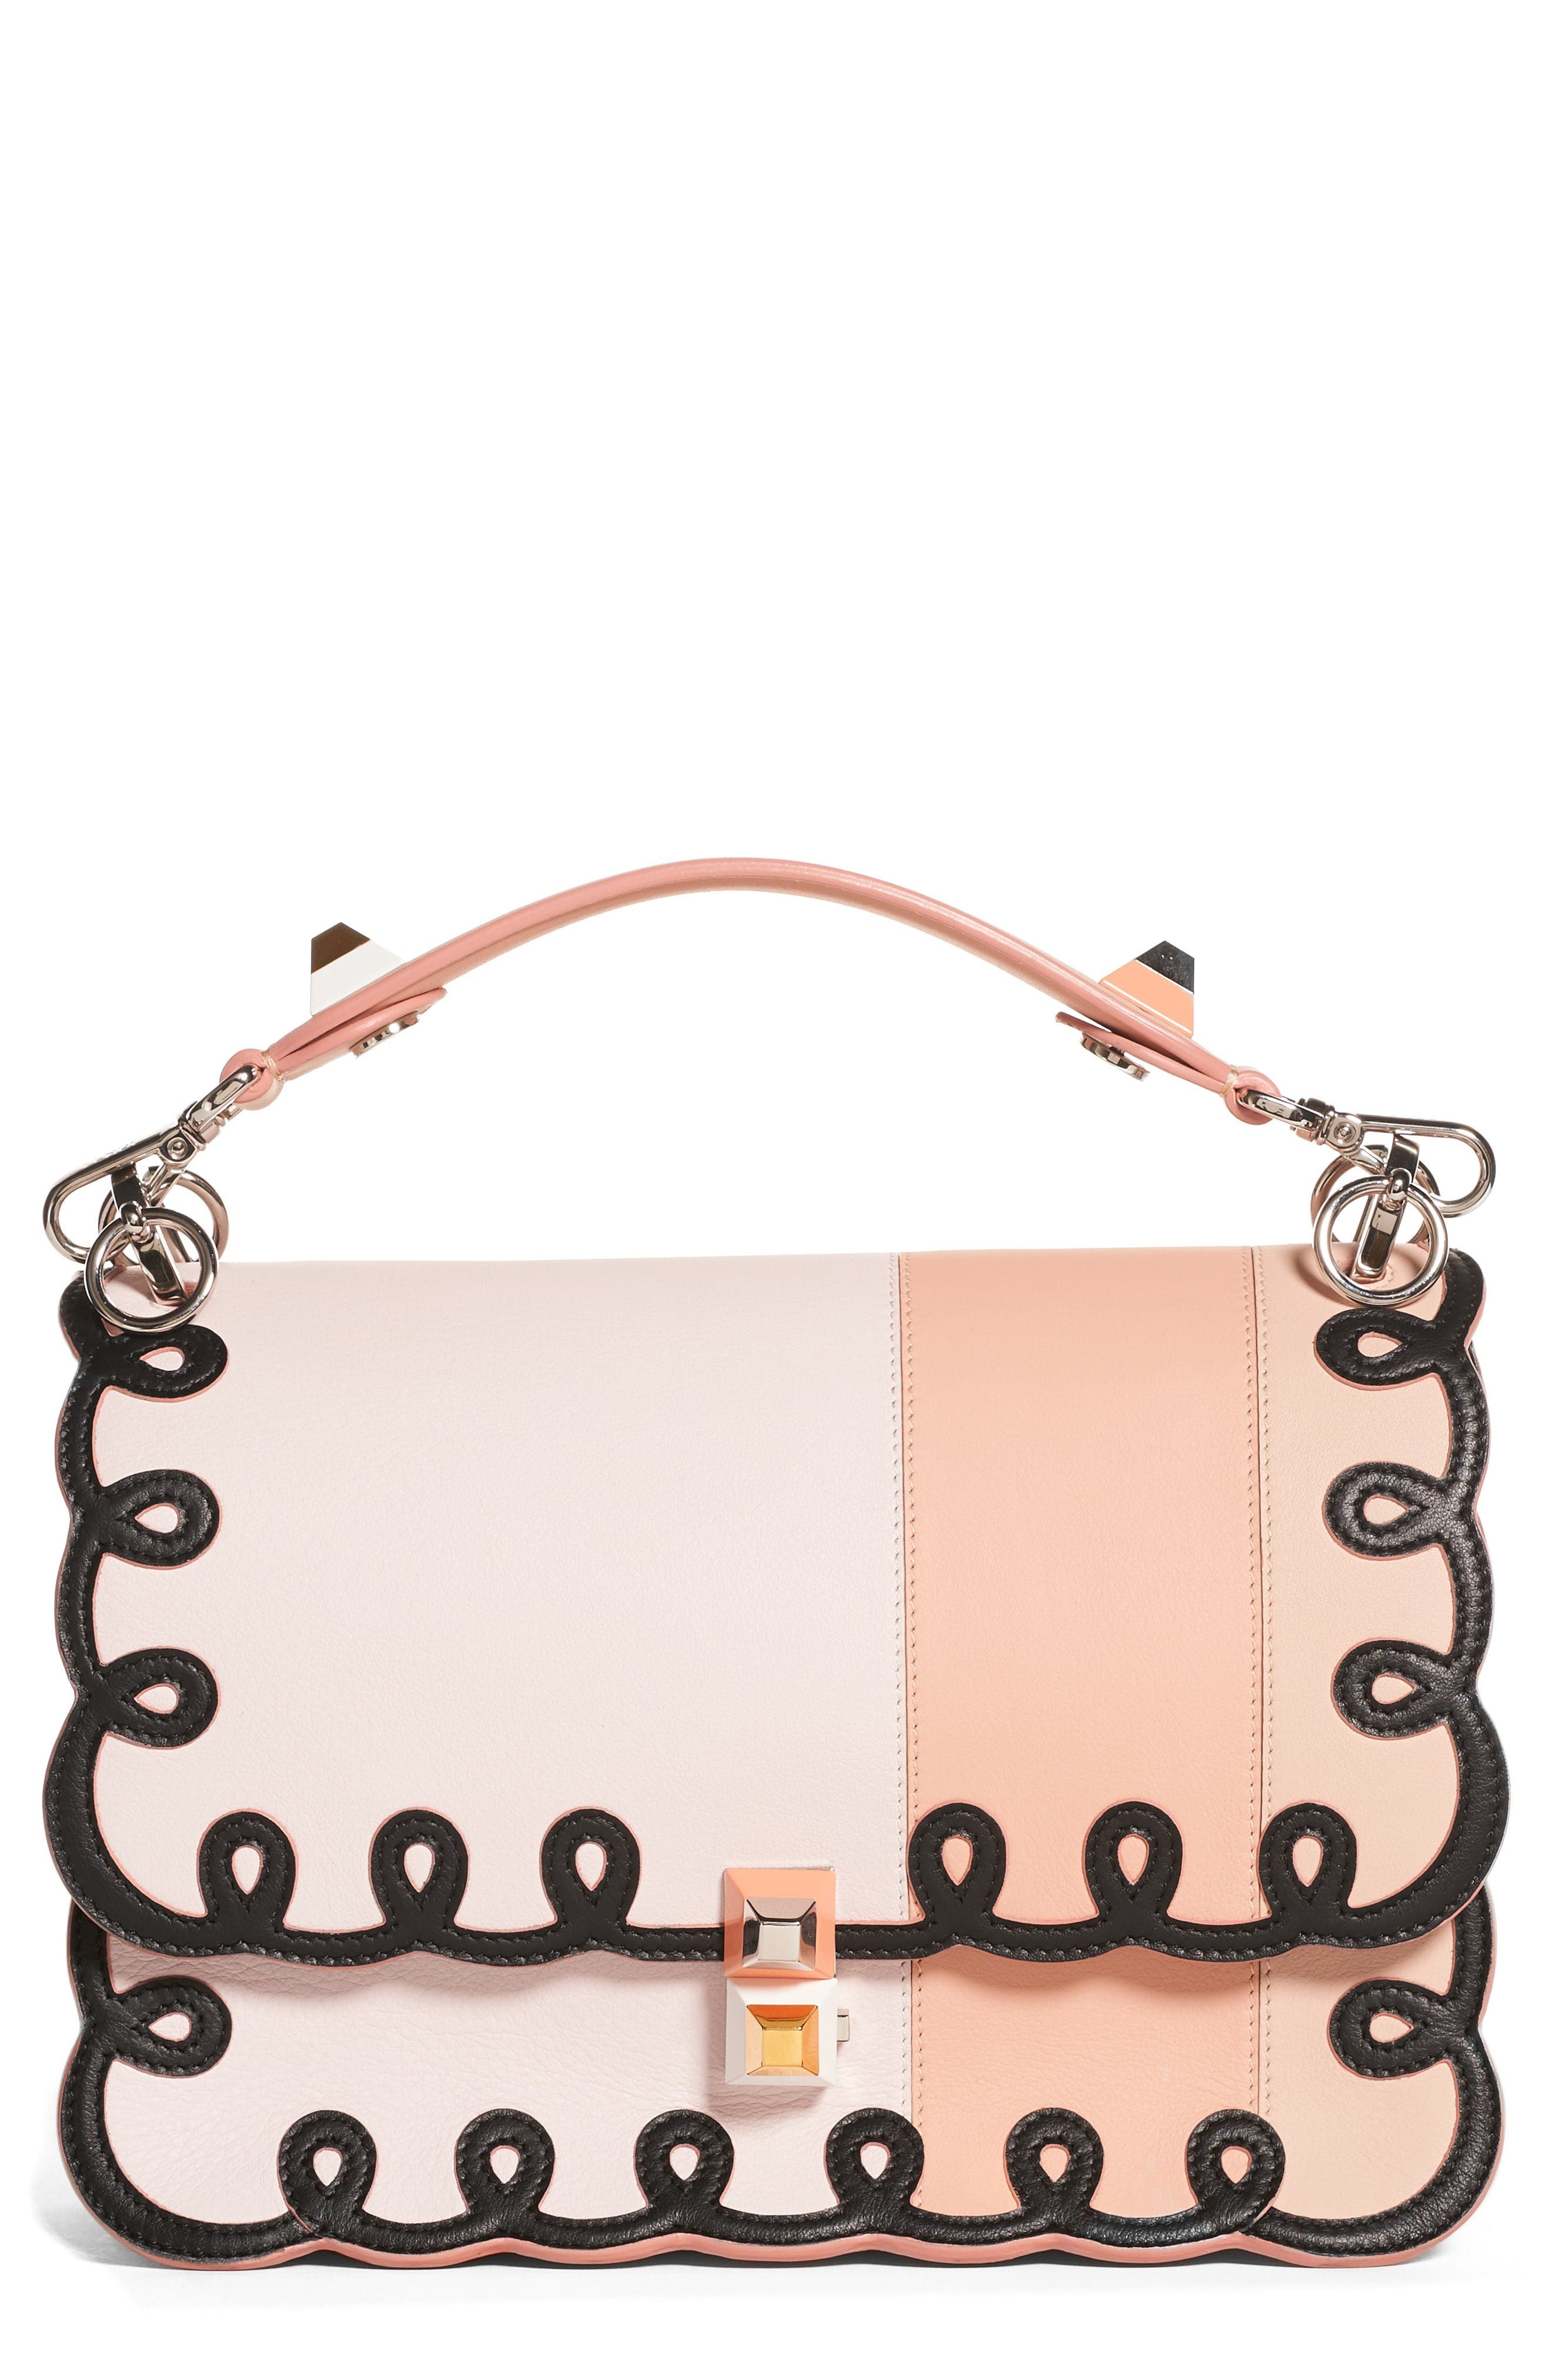 Alternate Image 1 Selected - Fendi Kan I Scalloped Stripe Leather Shoulder Bag